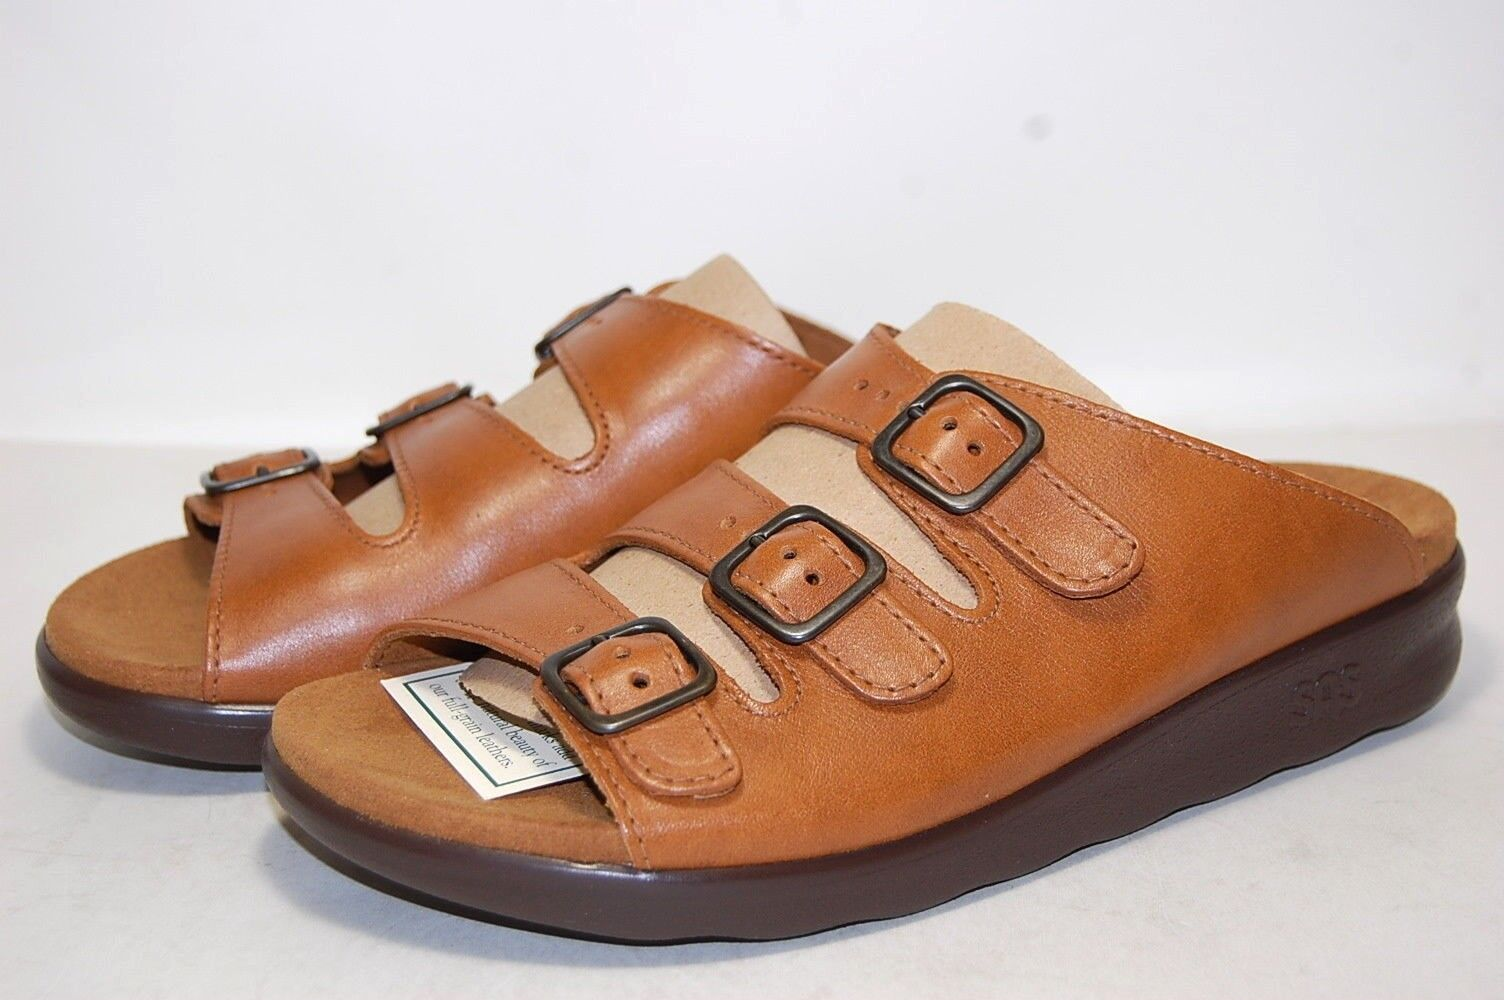 Original SAS Comfy Caramel W Wide Wide Wide 1680-201 Leather Women 873a30